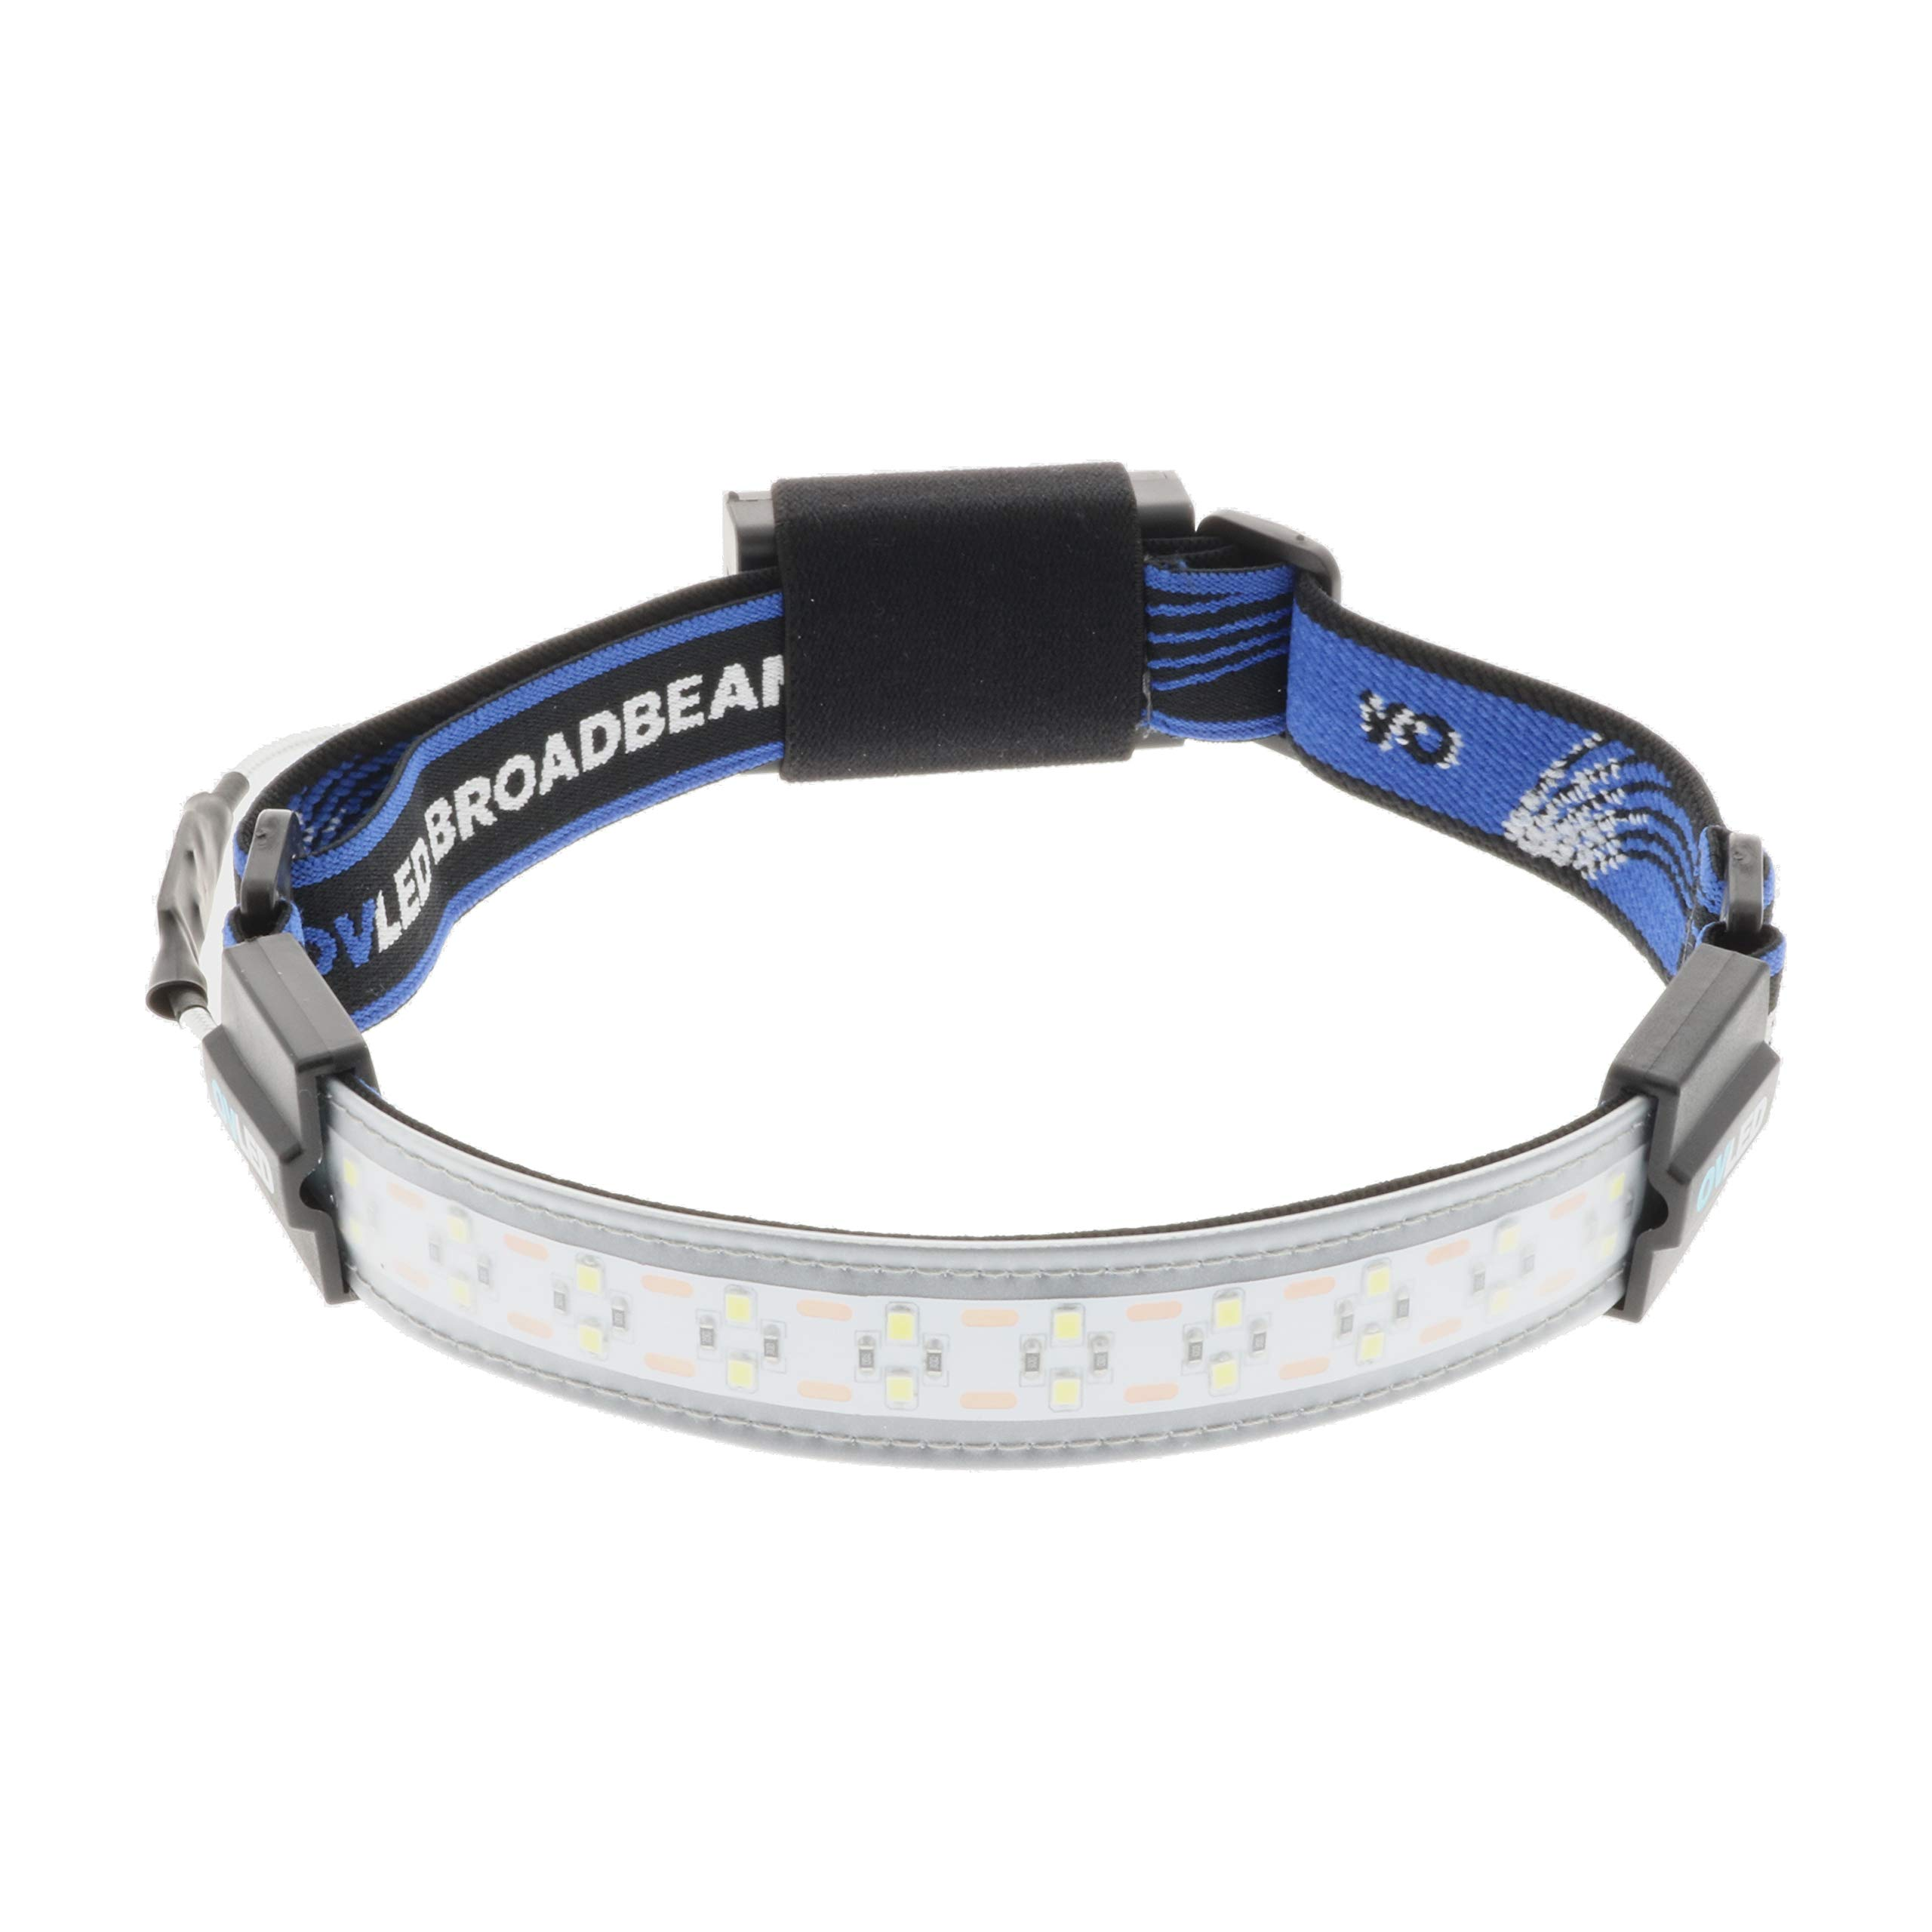 OVLED 802100 Broadbeam 210°, 300 Lumen, LED Next Generation Headlamp, Durable Elastic Headband, Best Wide Area Illumination